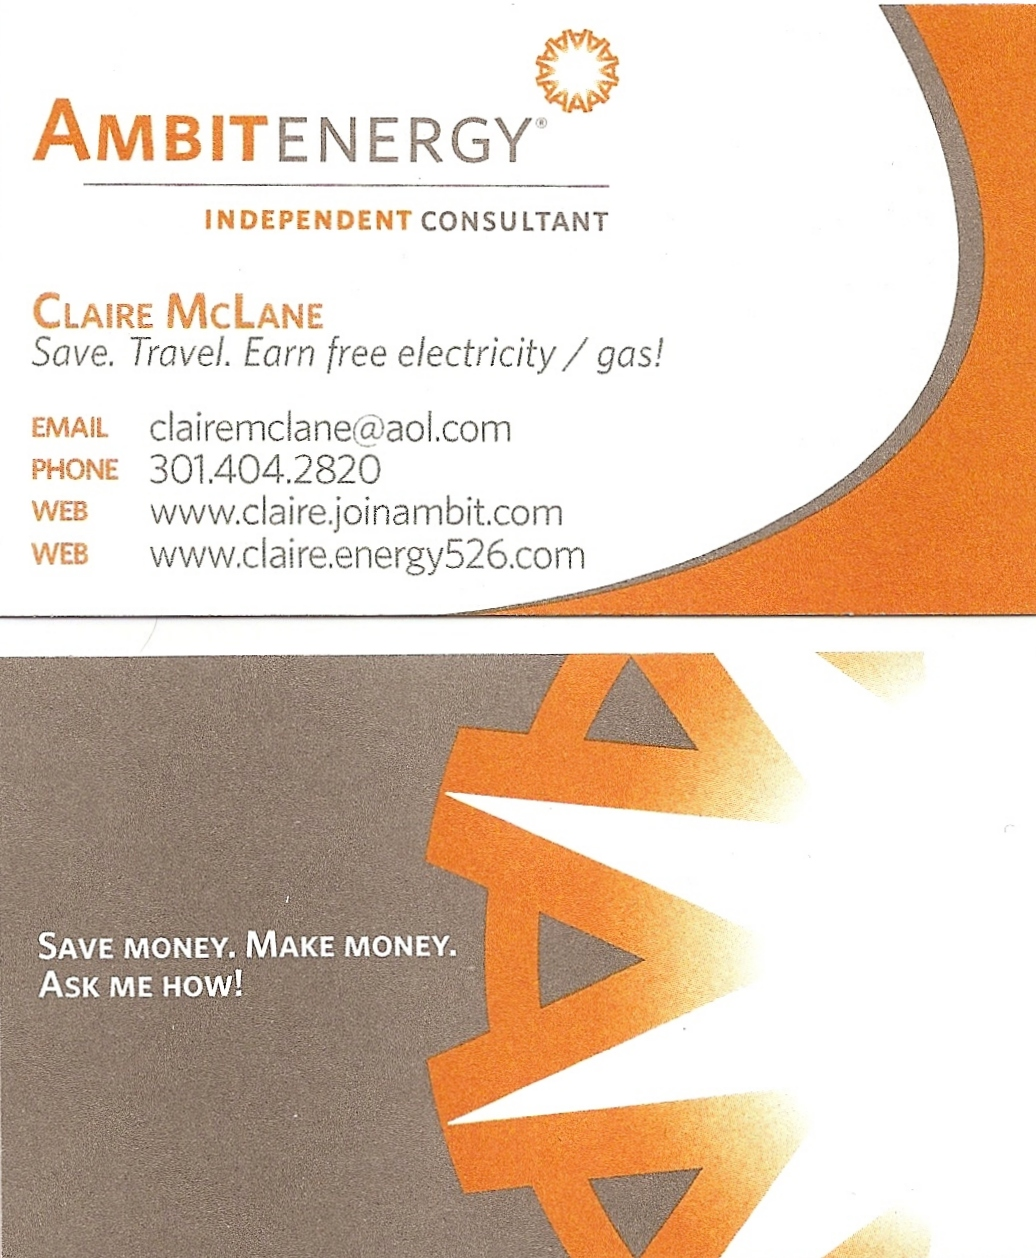 Ambit business cards ambit business card design 3 2 x 35 business x business card template business card sample ambit energy business card template wajeb